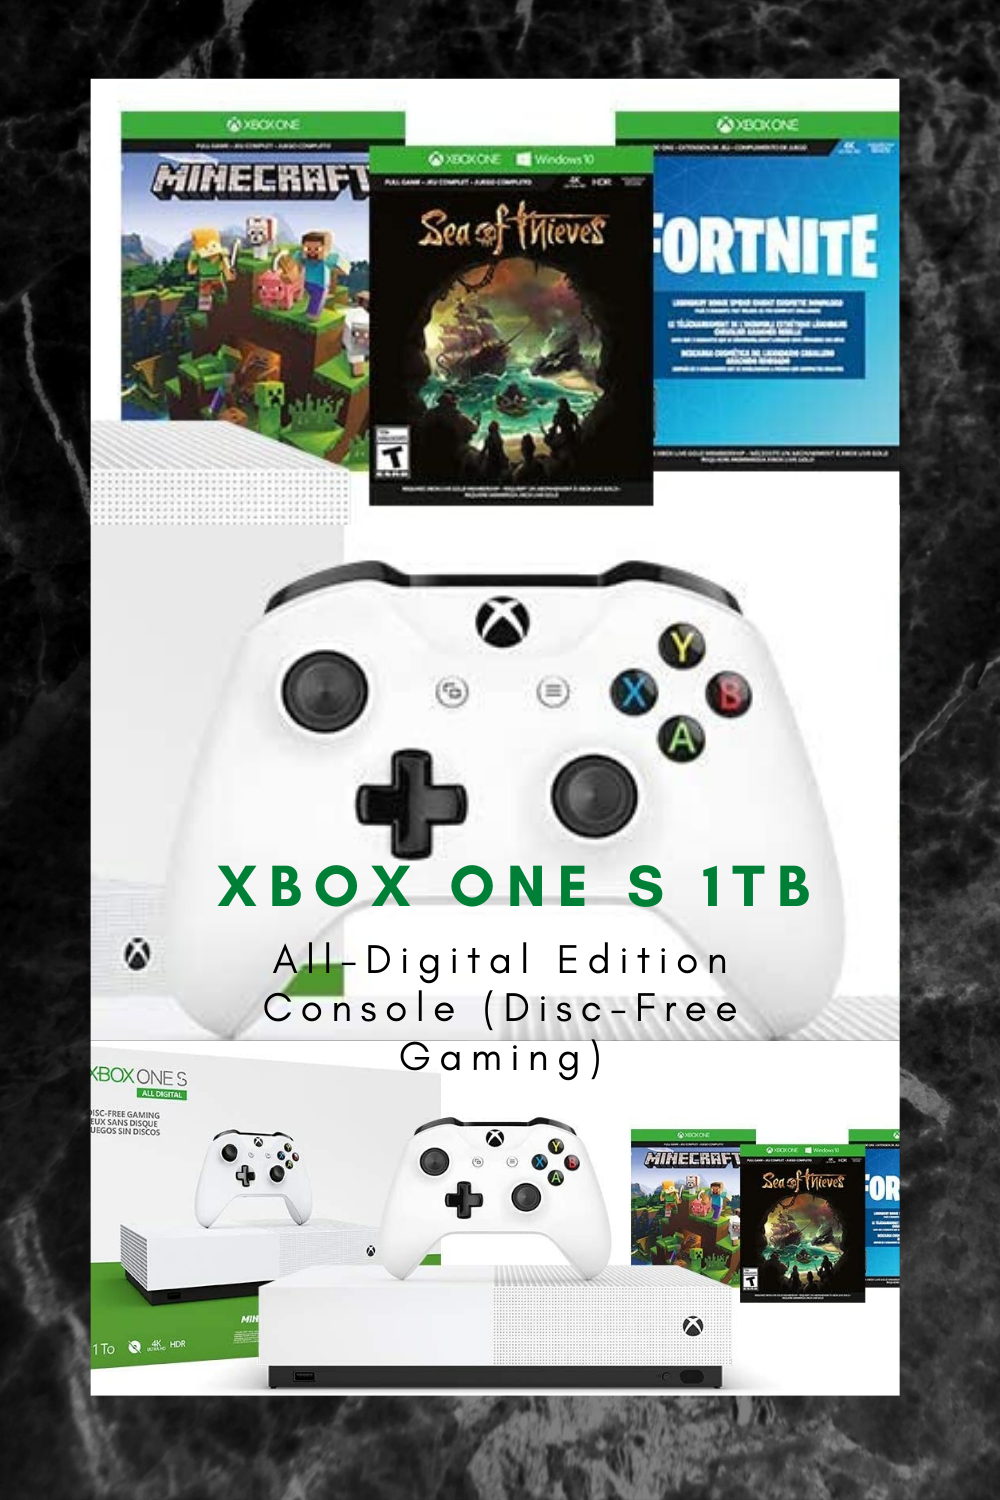 1d30212a8bfb51e7b32cff159cd114a5 - How To Get Disc Out Of Xbox One S